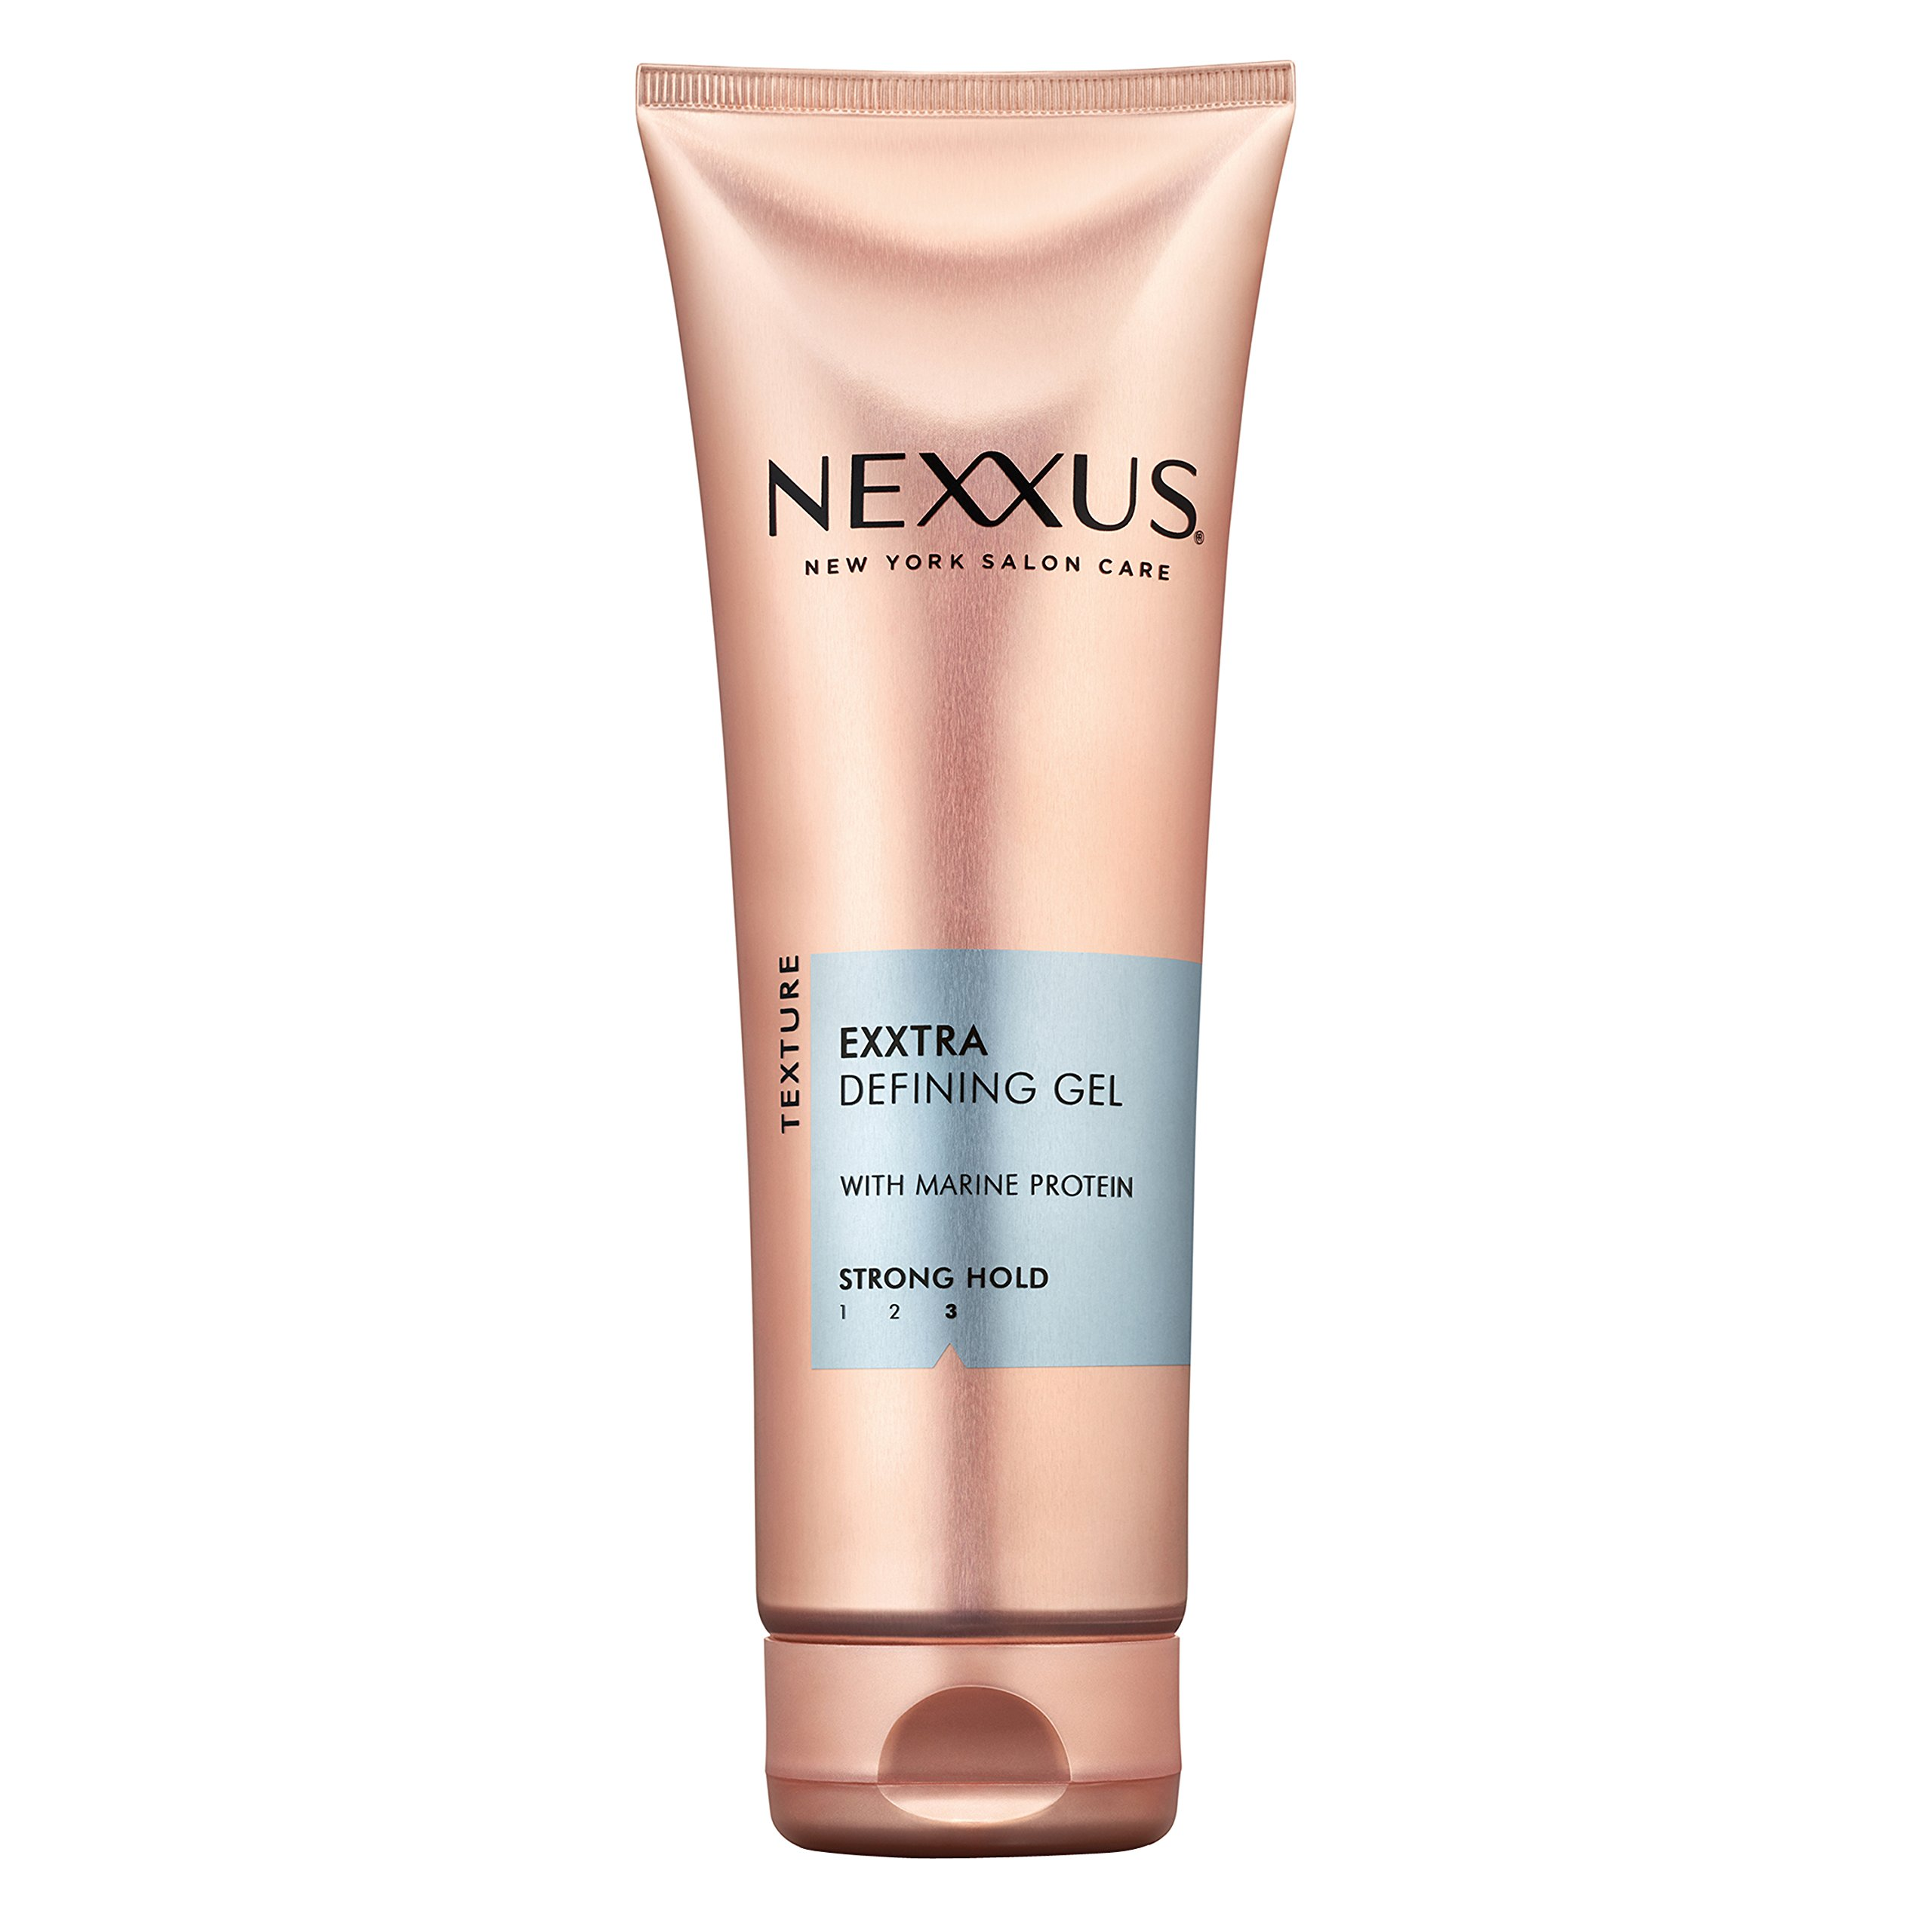 Nexxus Exxtra Defining Gel 8.5 Ounce Strong Hold (251ml) (6 Pack) by Nexxus (Image #1)